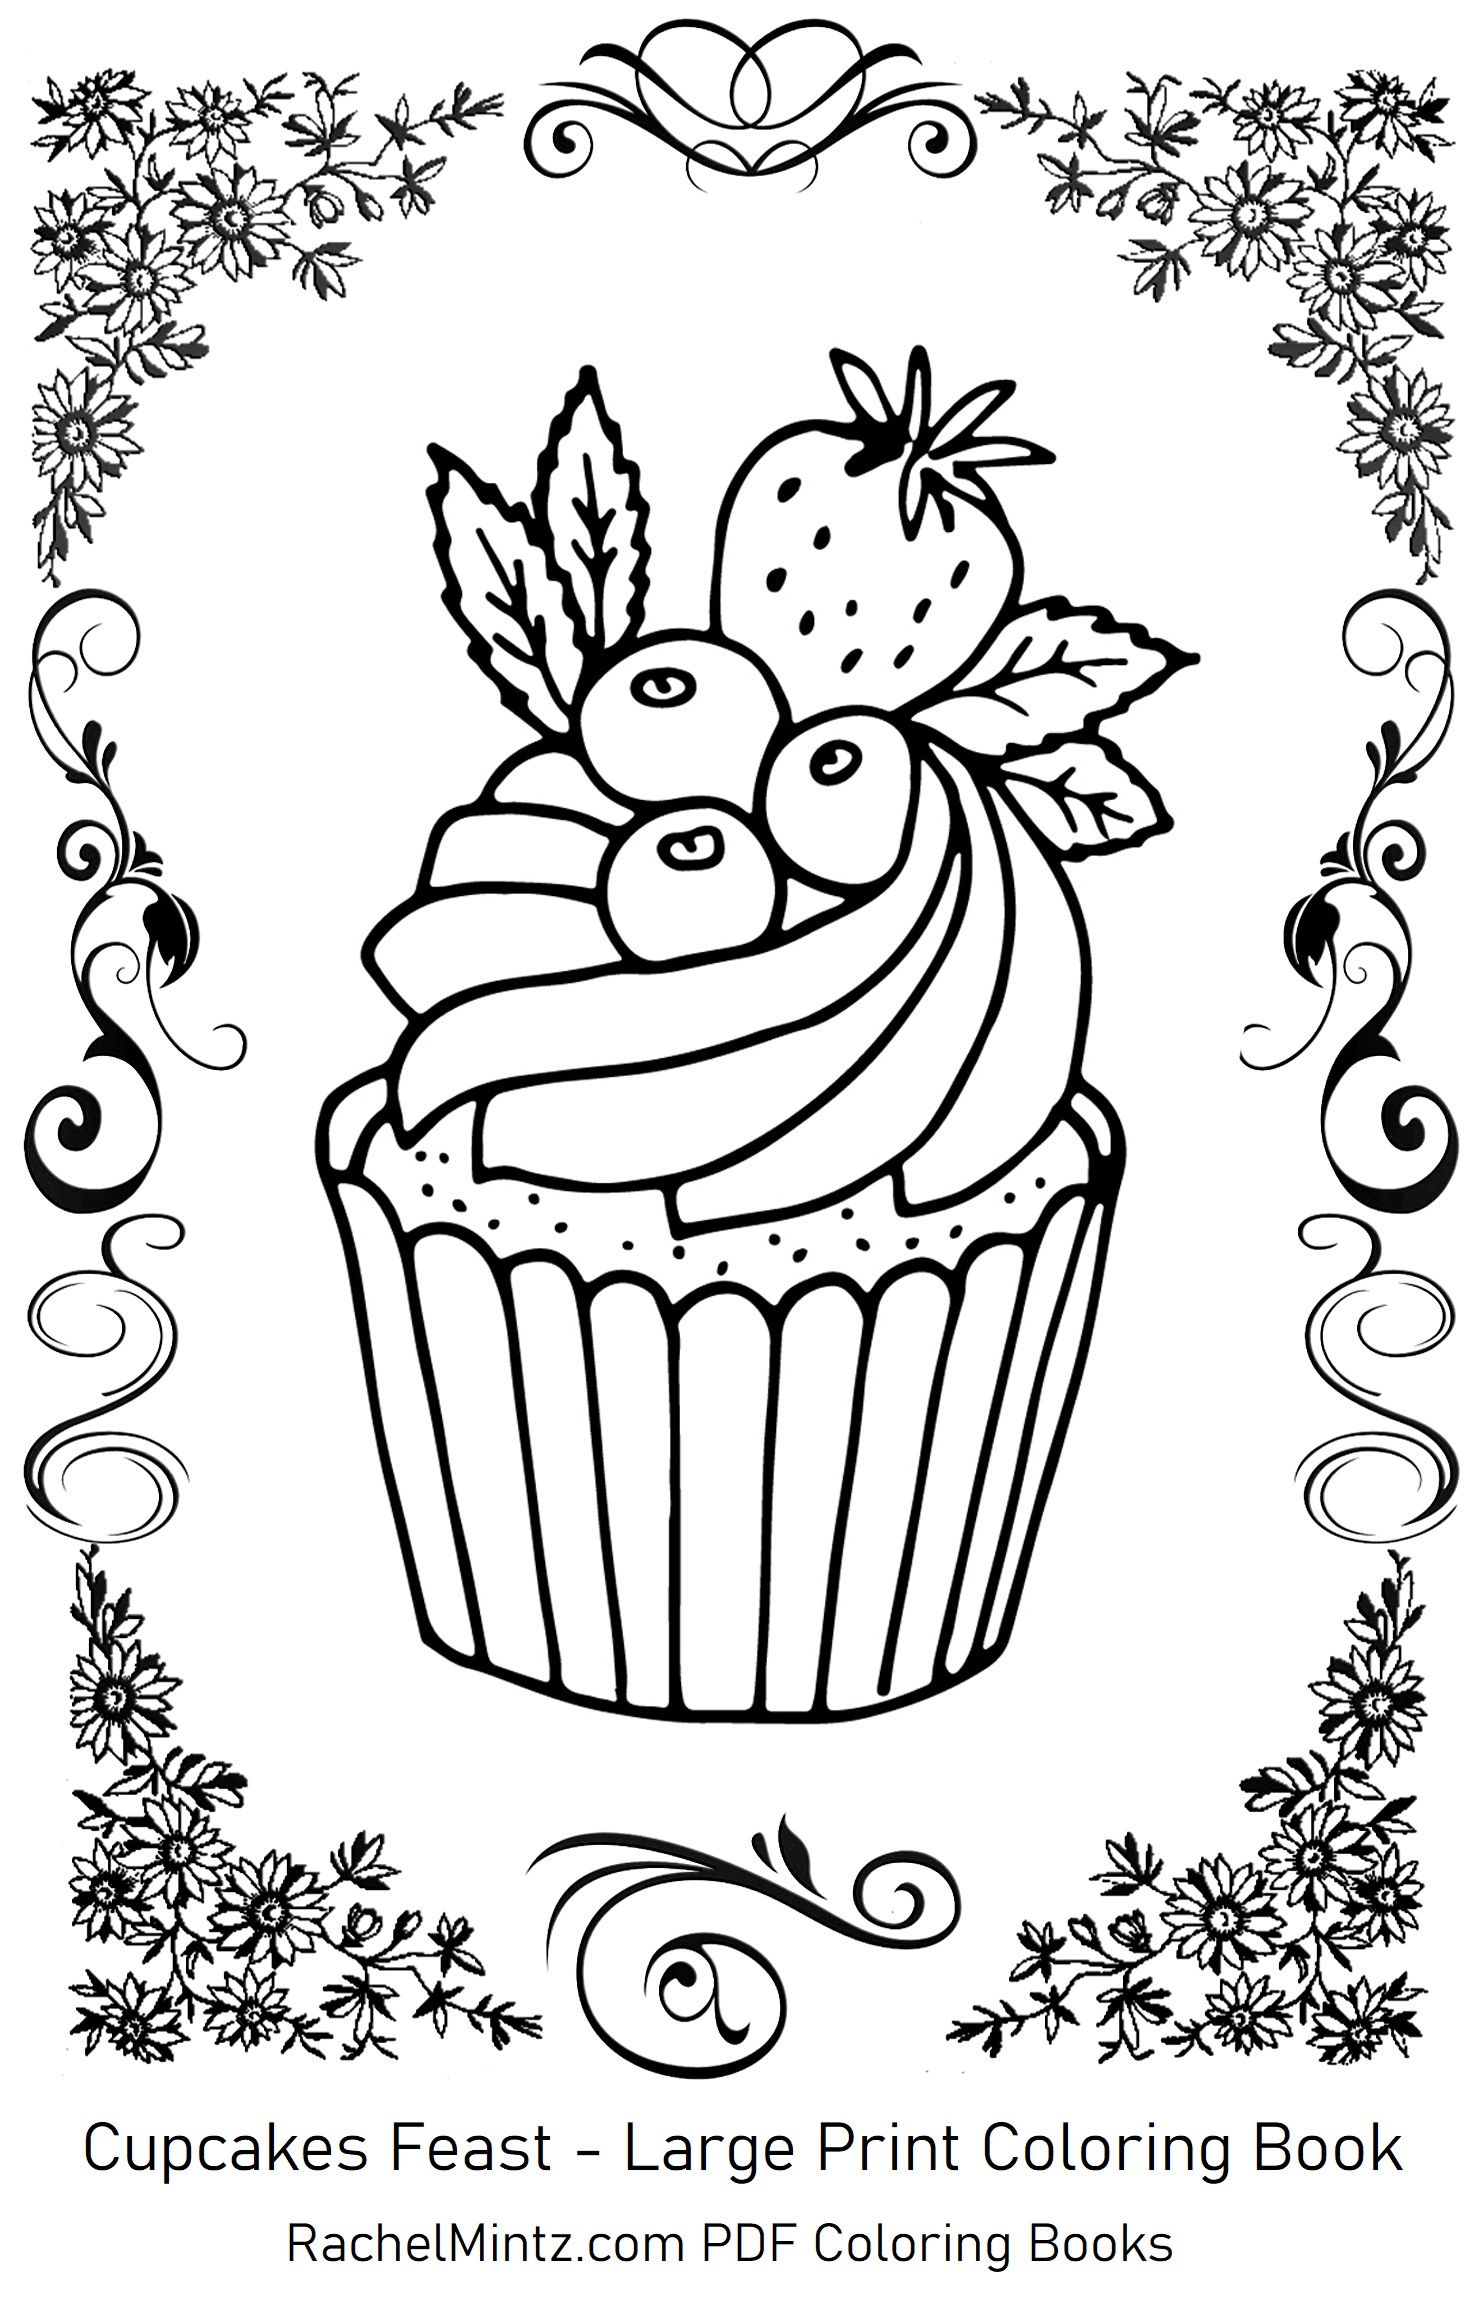 Easy Coloring Pages In Large Print Coloring Books Easy Coloring Pages Large Prints